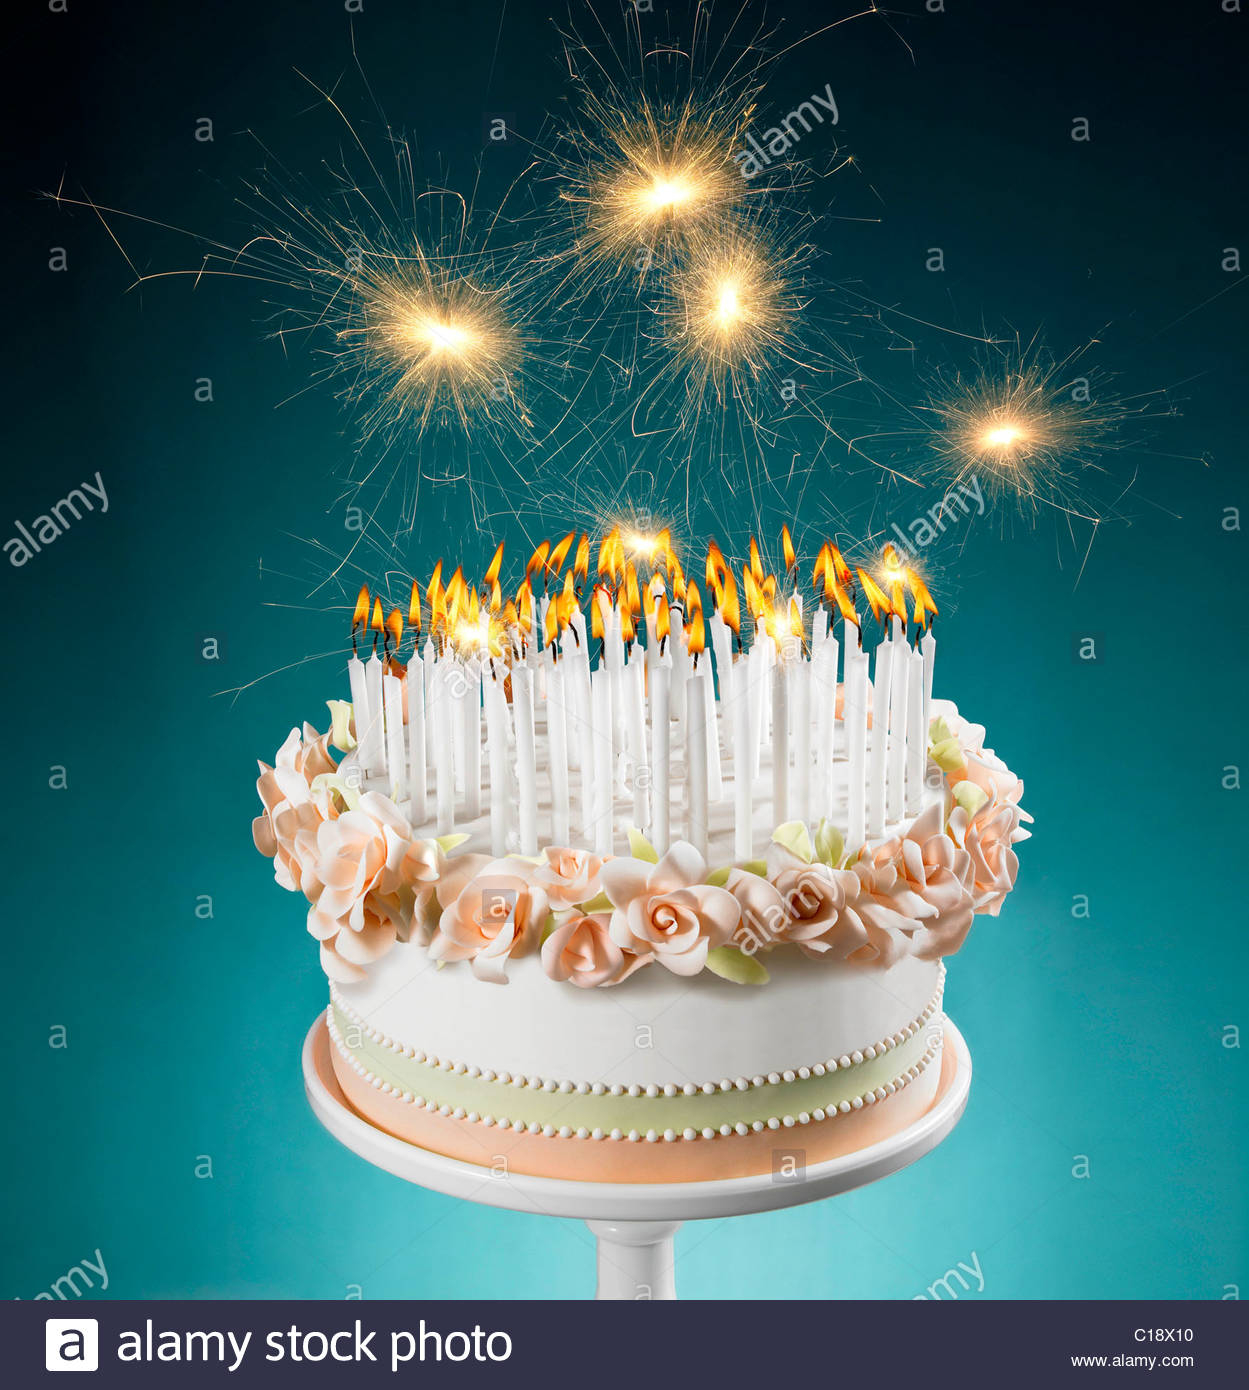 Birthday Cakes With Candles Birthday Cake With Lots Of Burning Candles Stock Photo 35231420 Alamy